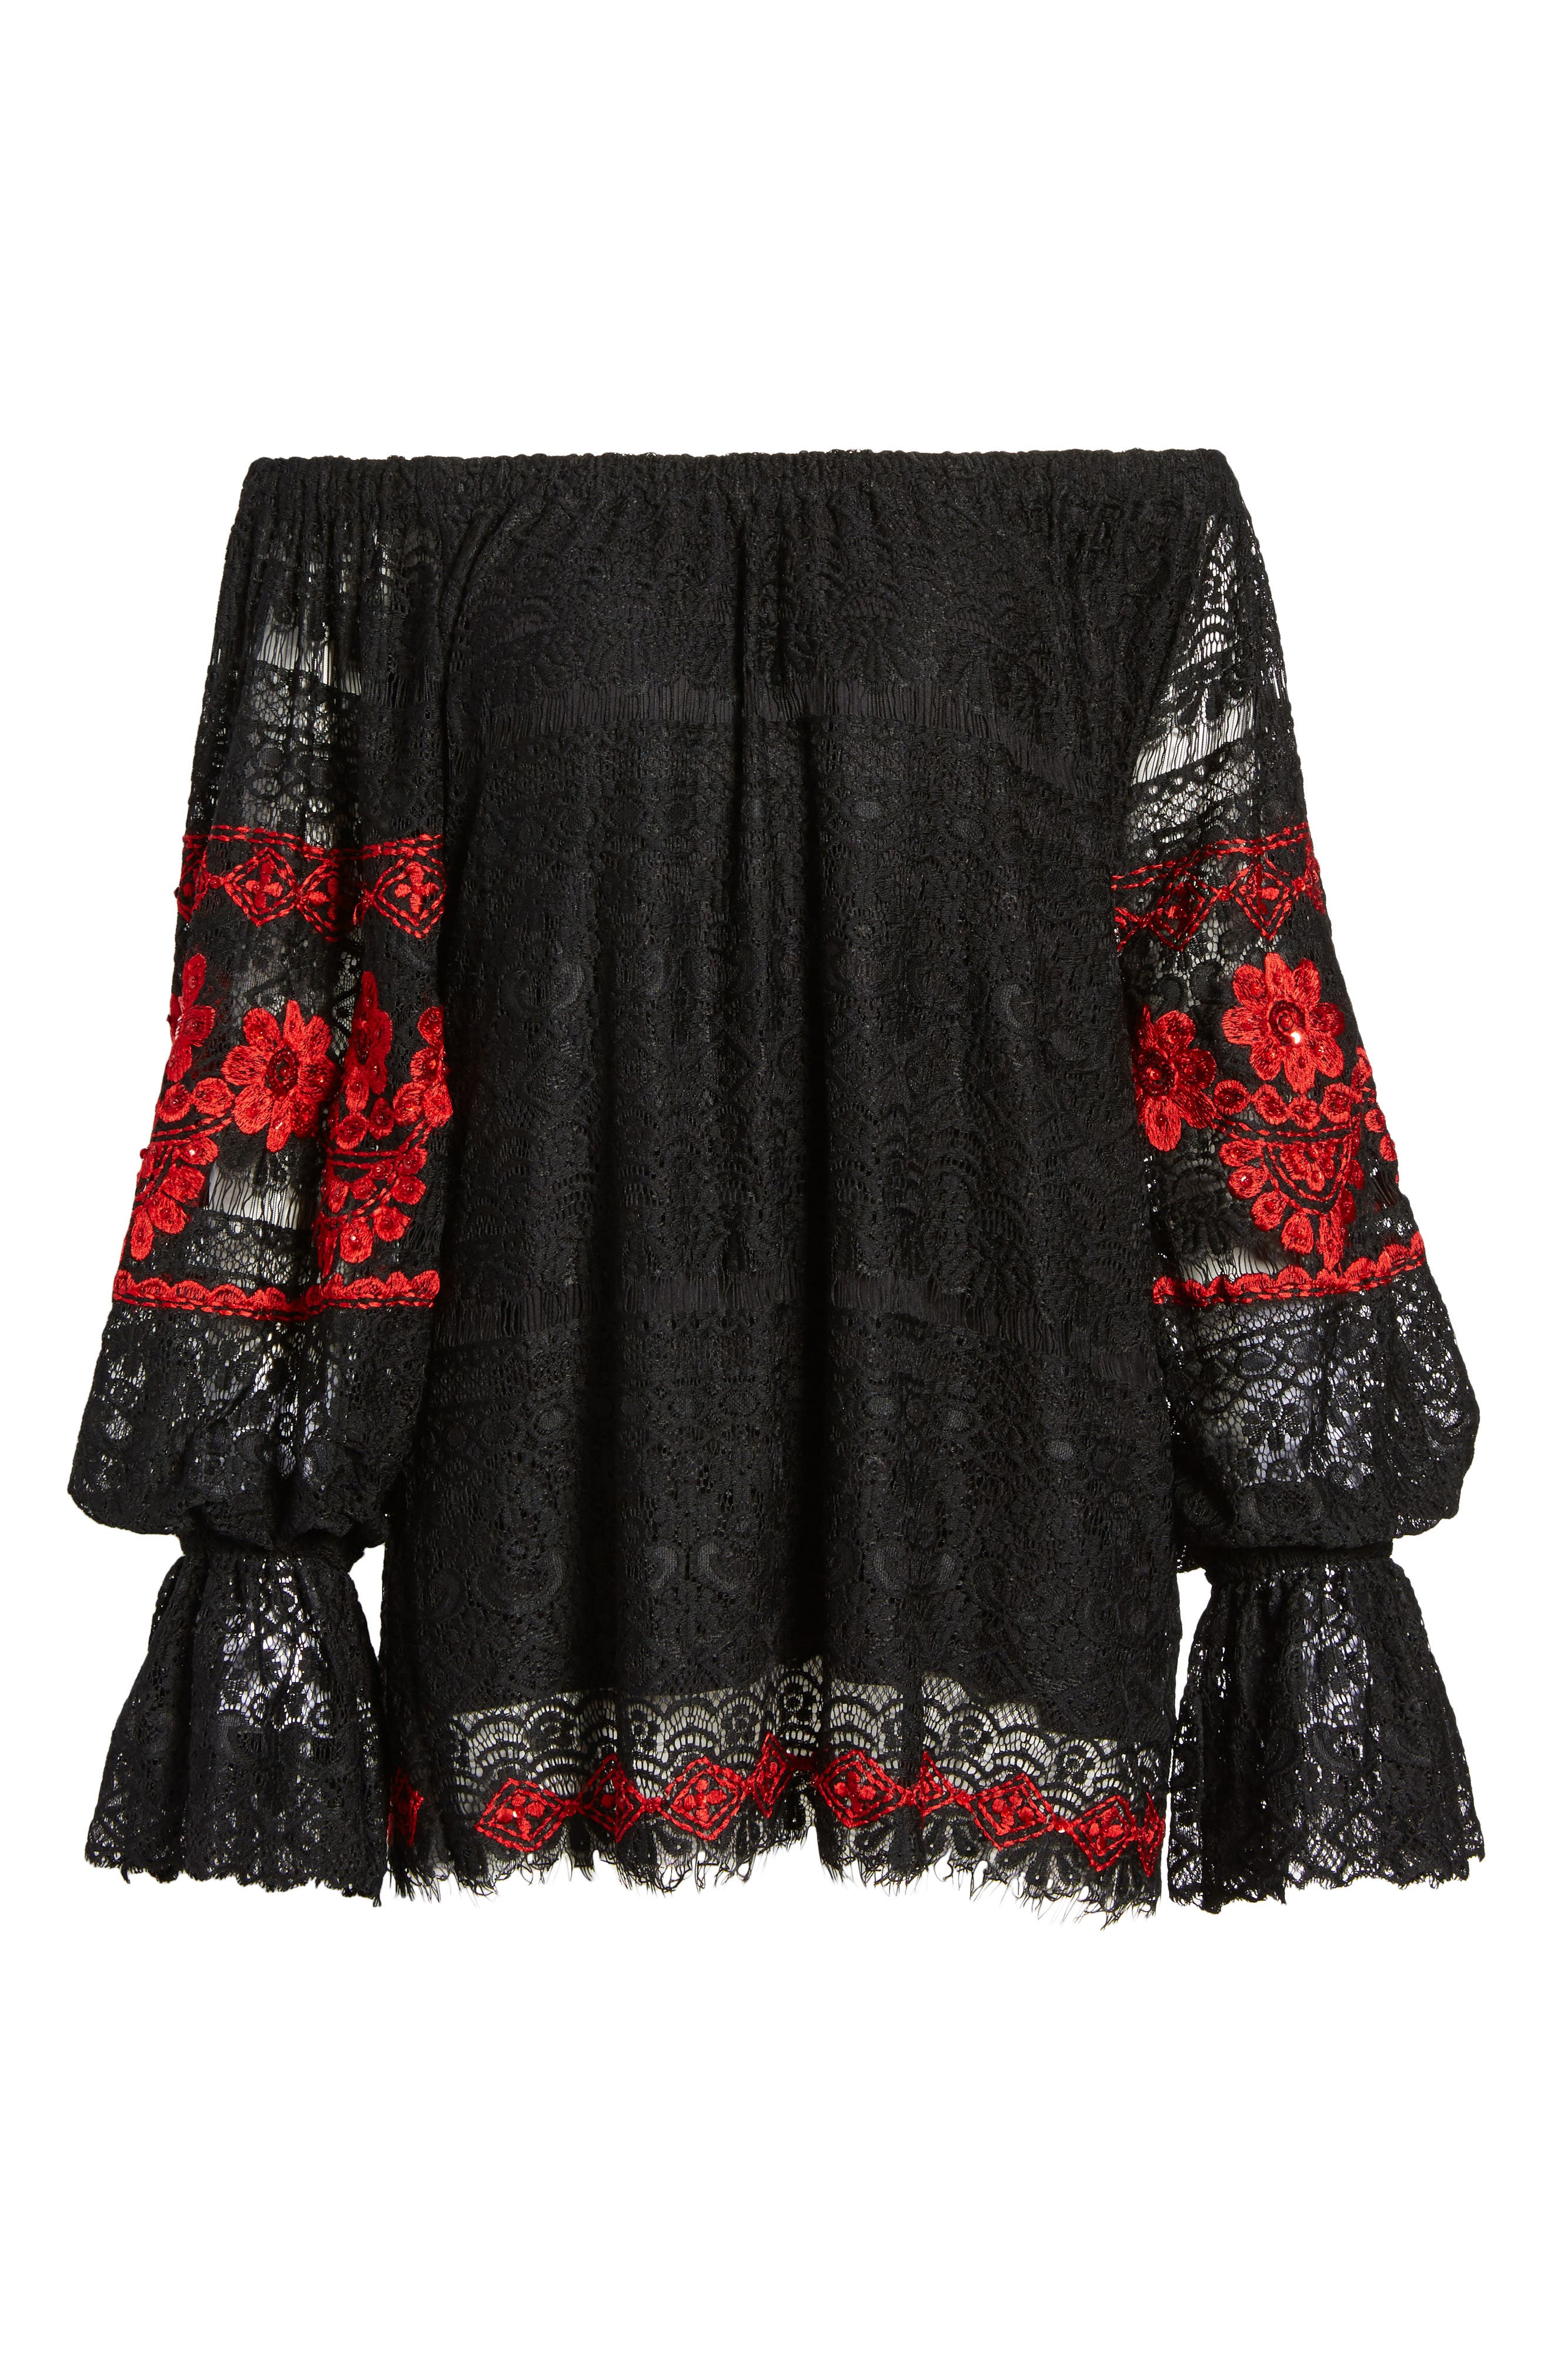 Clare Off the Shoulder Lace Top,                             Alternate thumbnail 6, color,                             001